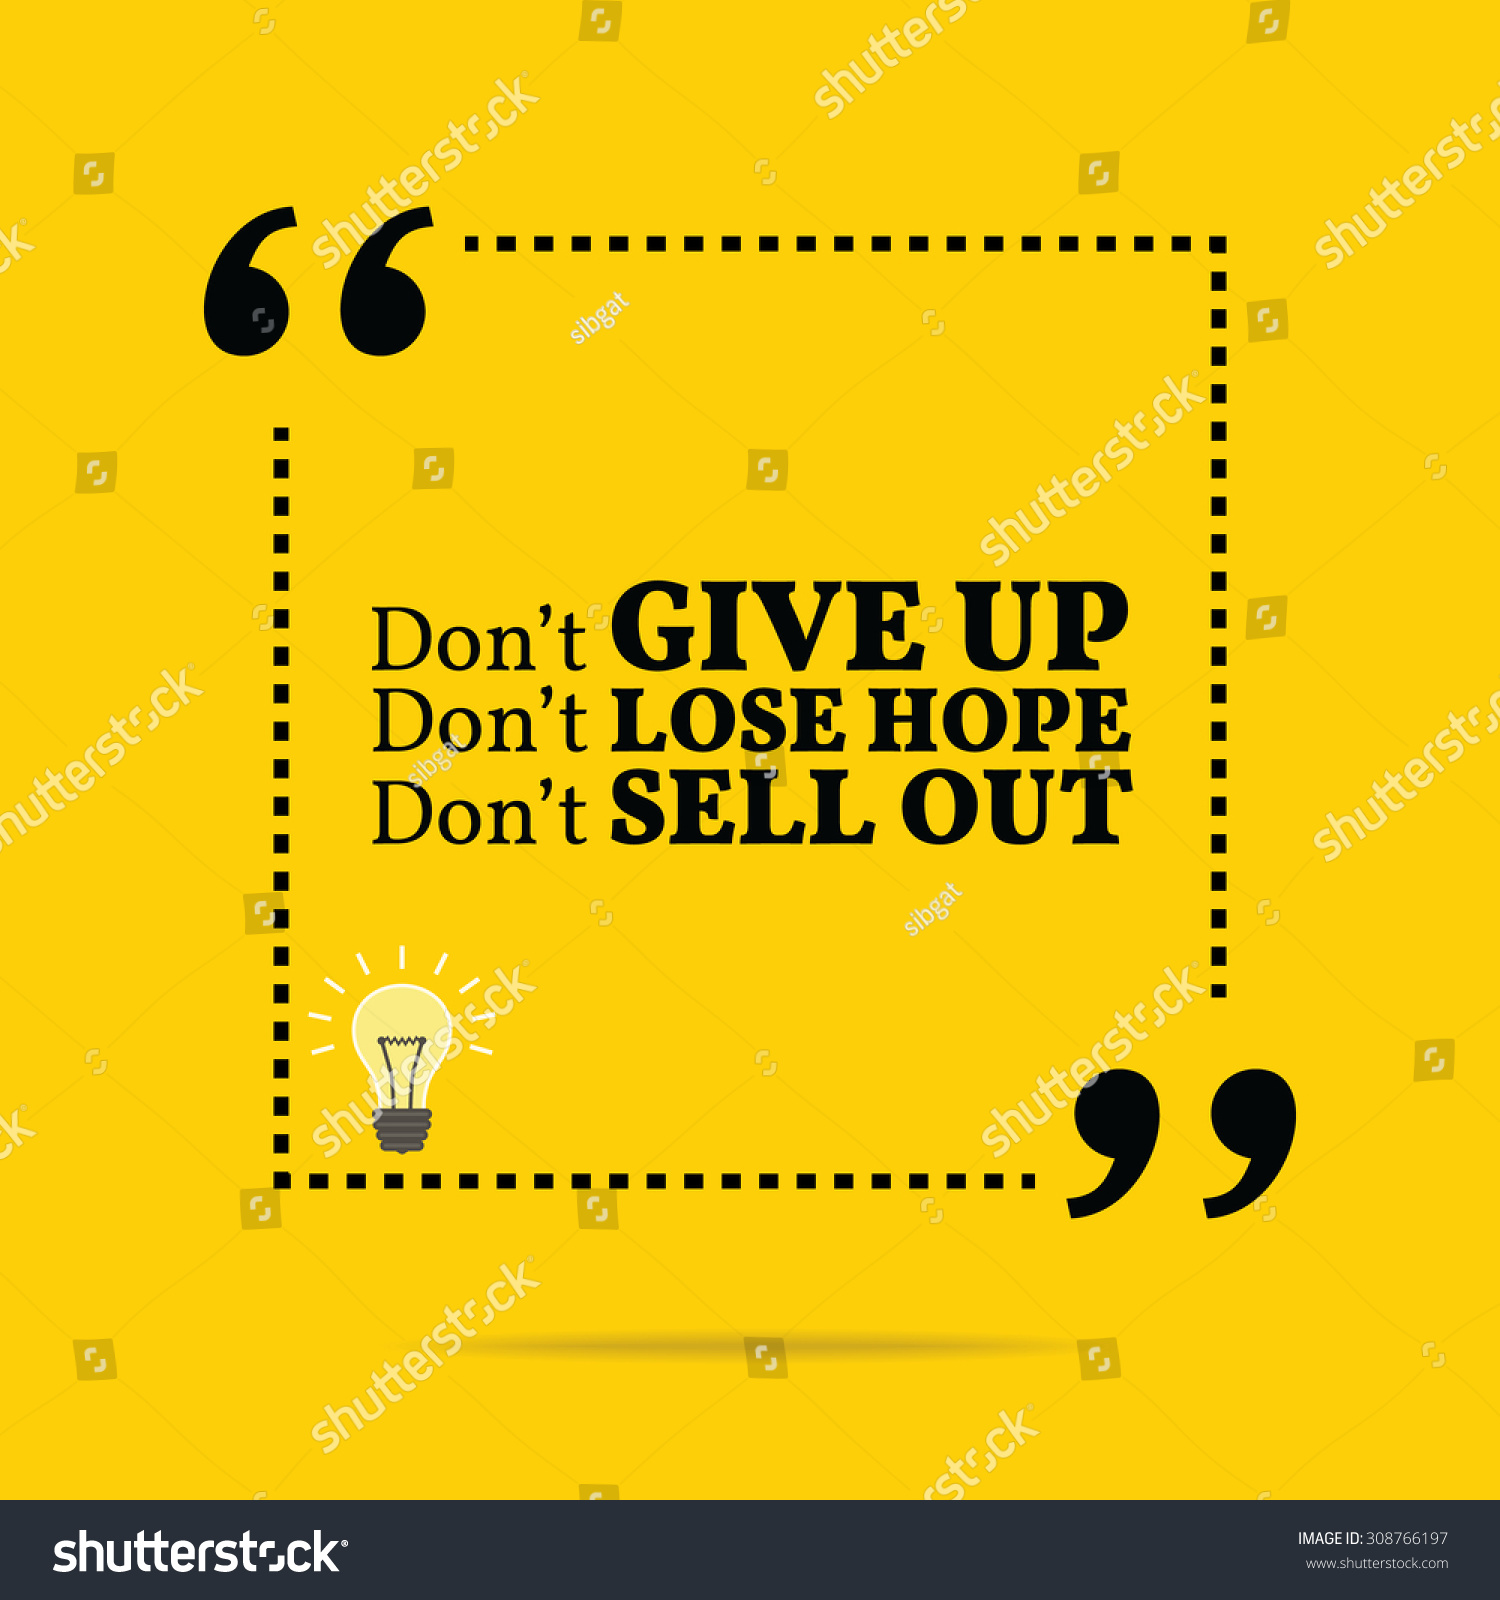 Simple Typography Spells Out A Powerful Motivation For: Inspirational Motivational Quote. Don'T Give Up. Don'T